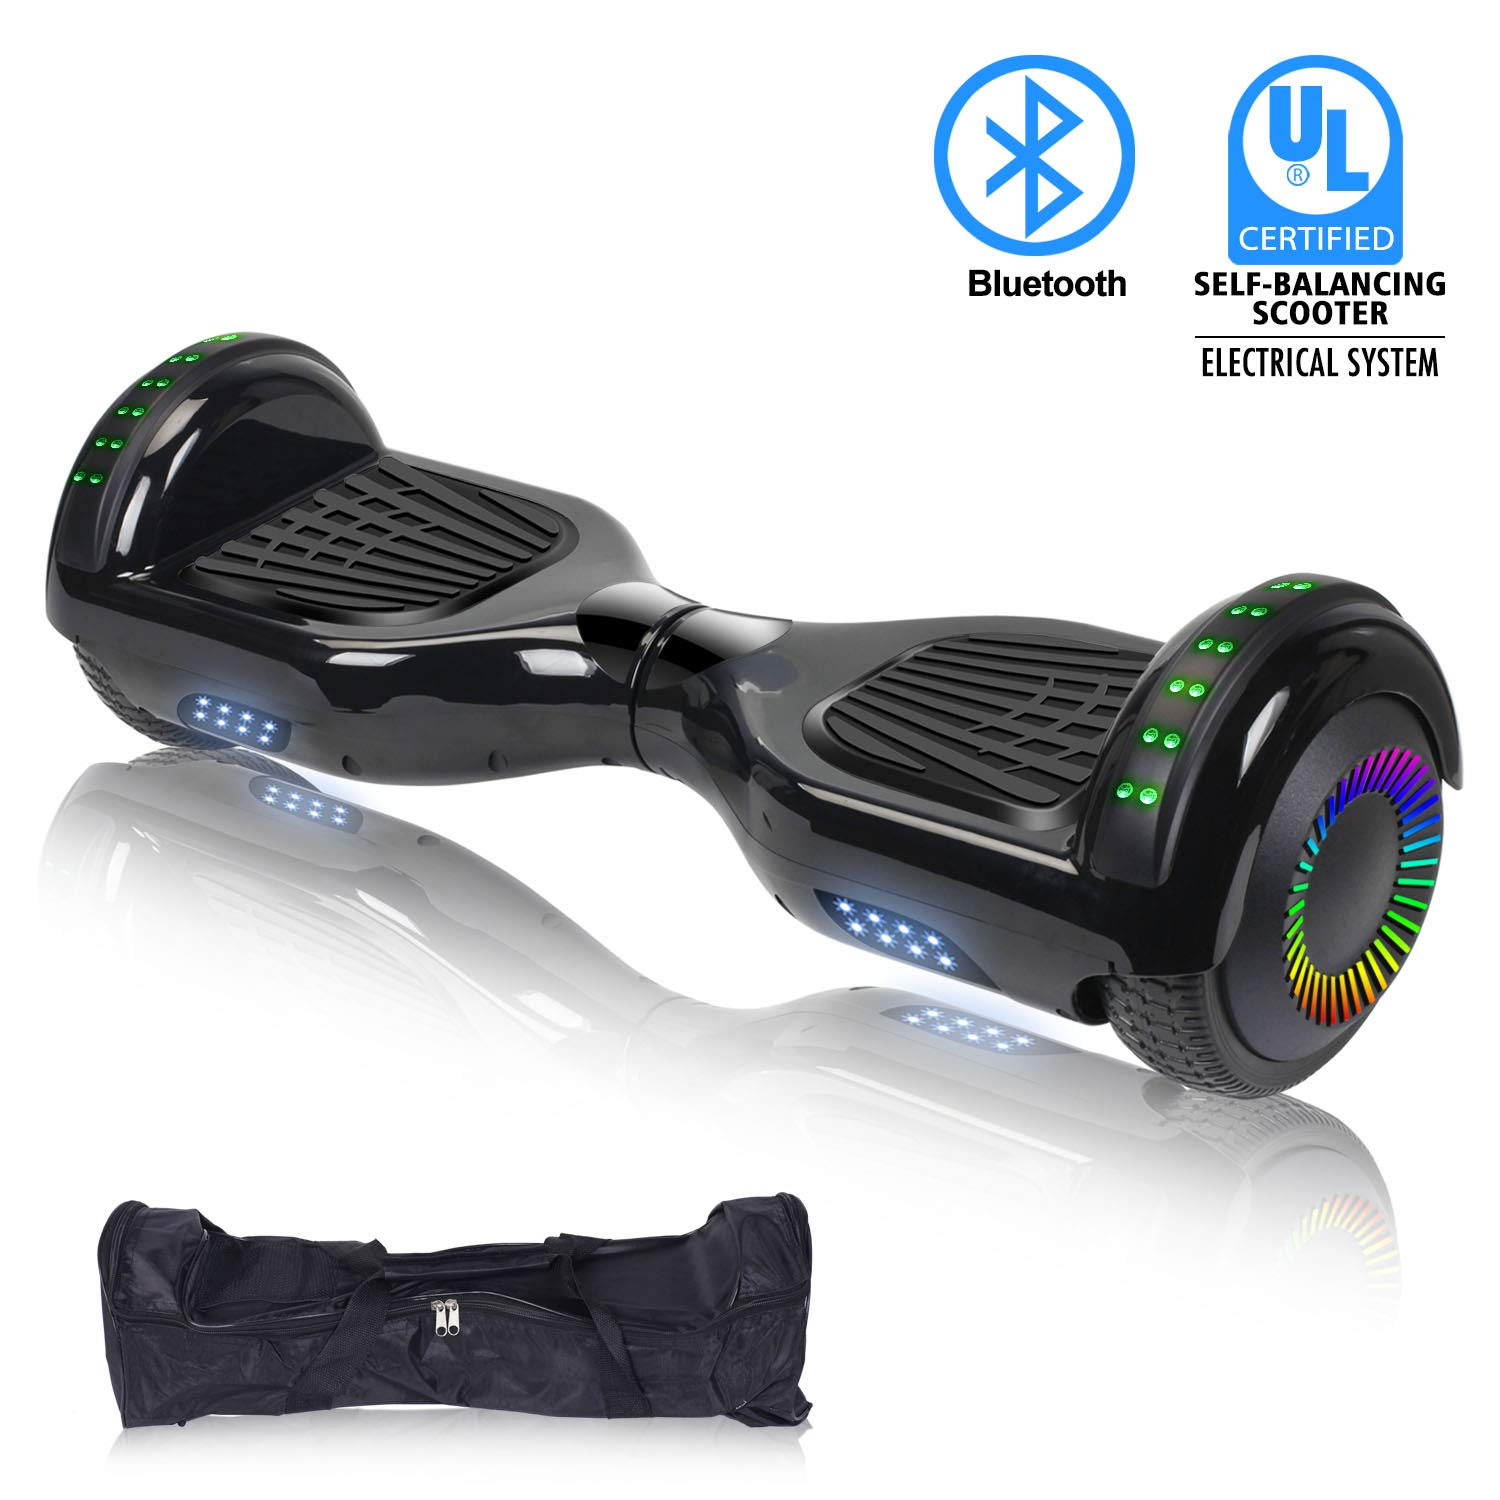 """SWEETBUY Hoverboard UL 2272 Certified 6.5"""" Two-Wheel Bluetooth Self Balancing Electric Scooter with LED Light Flash Lights Wheels Black (Free Carry Bag) by SWEETBUY (Image #1)"""